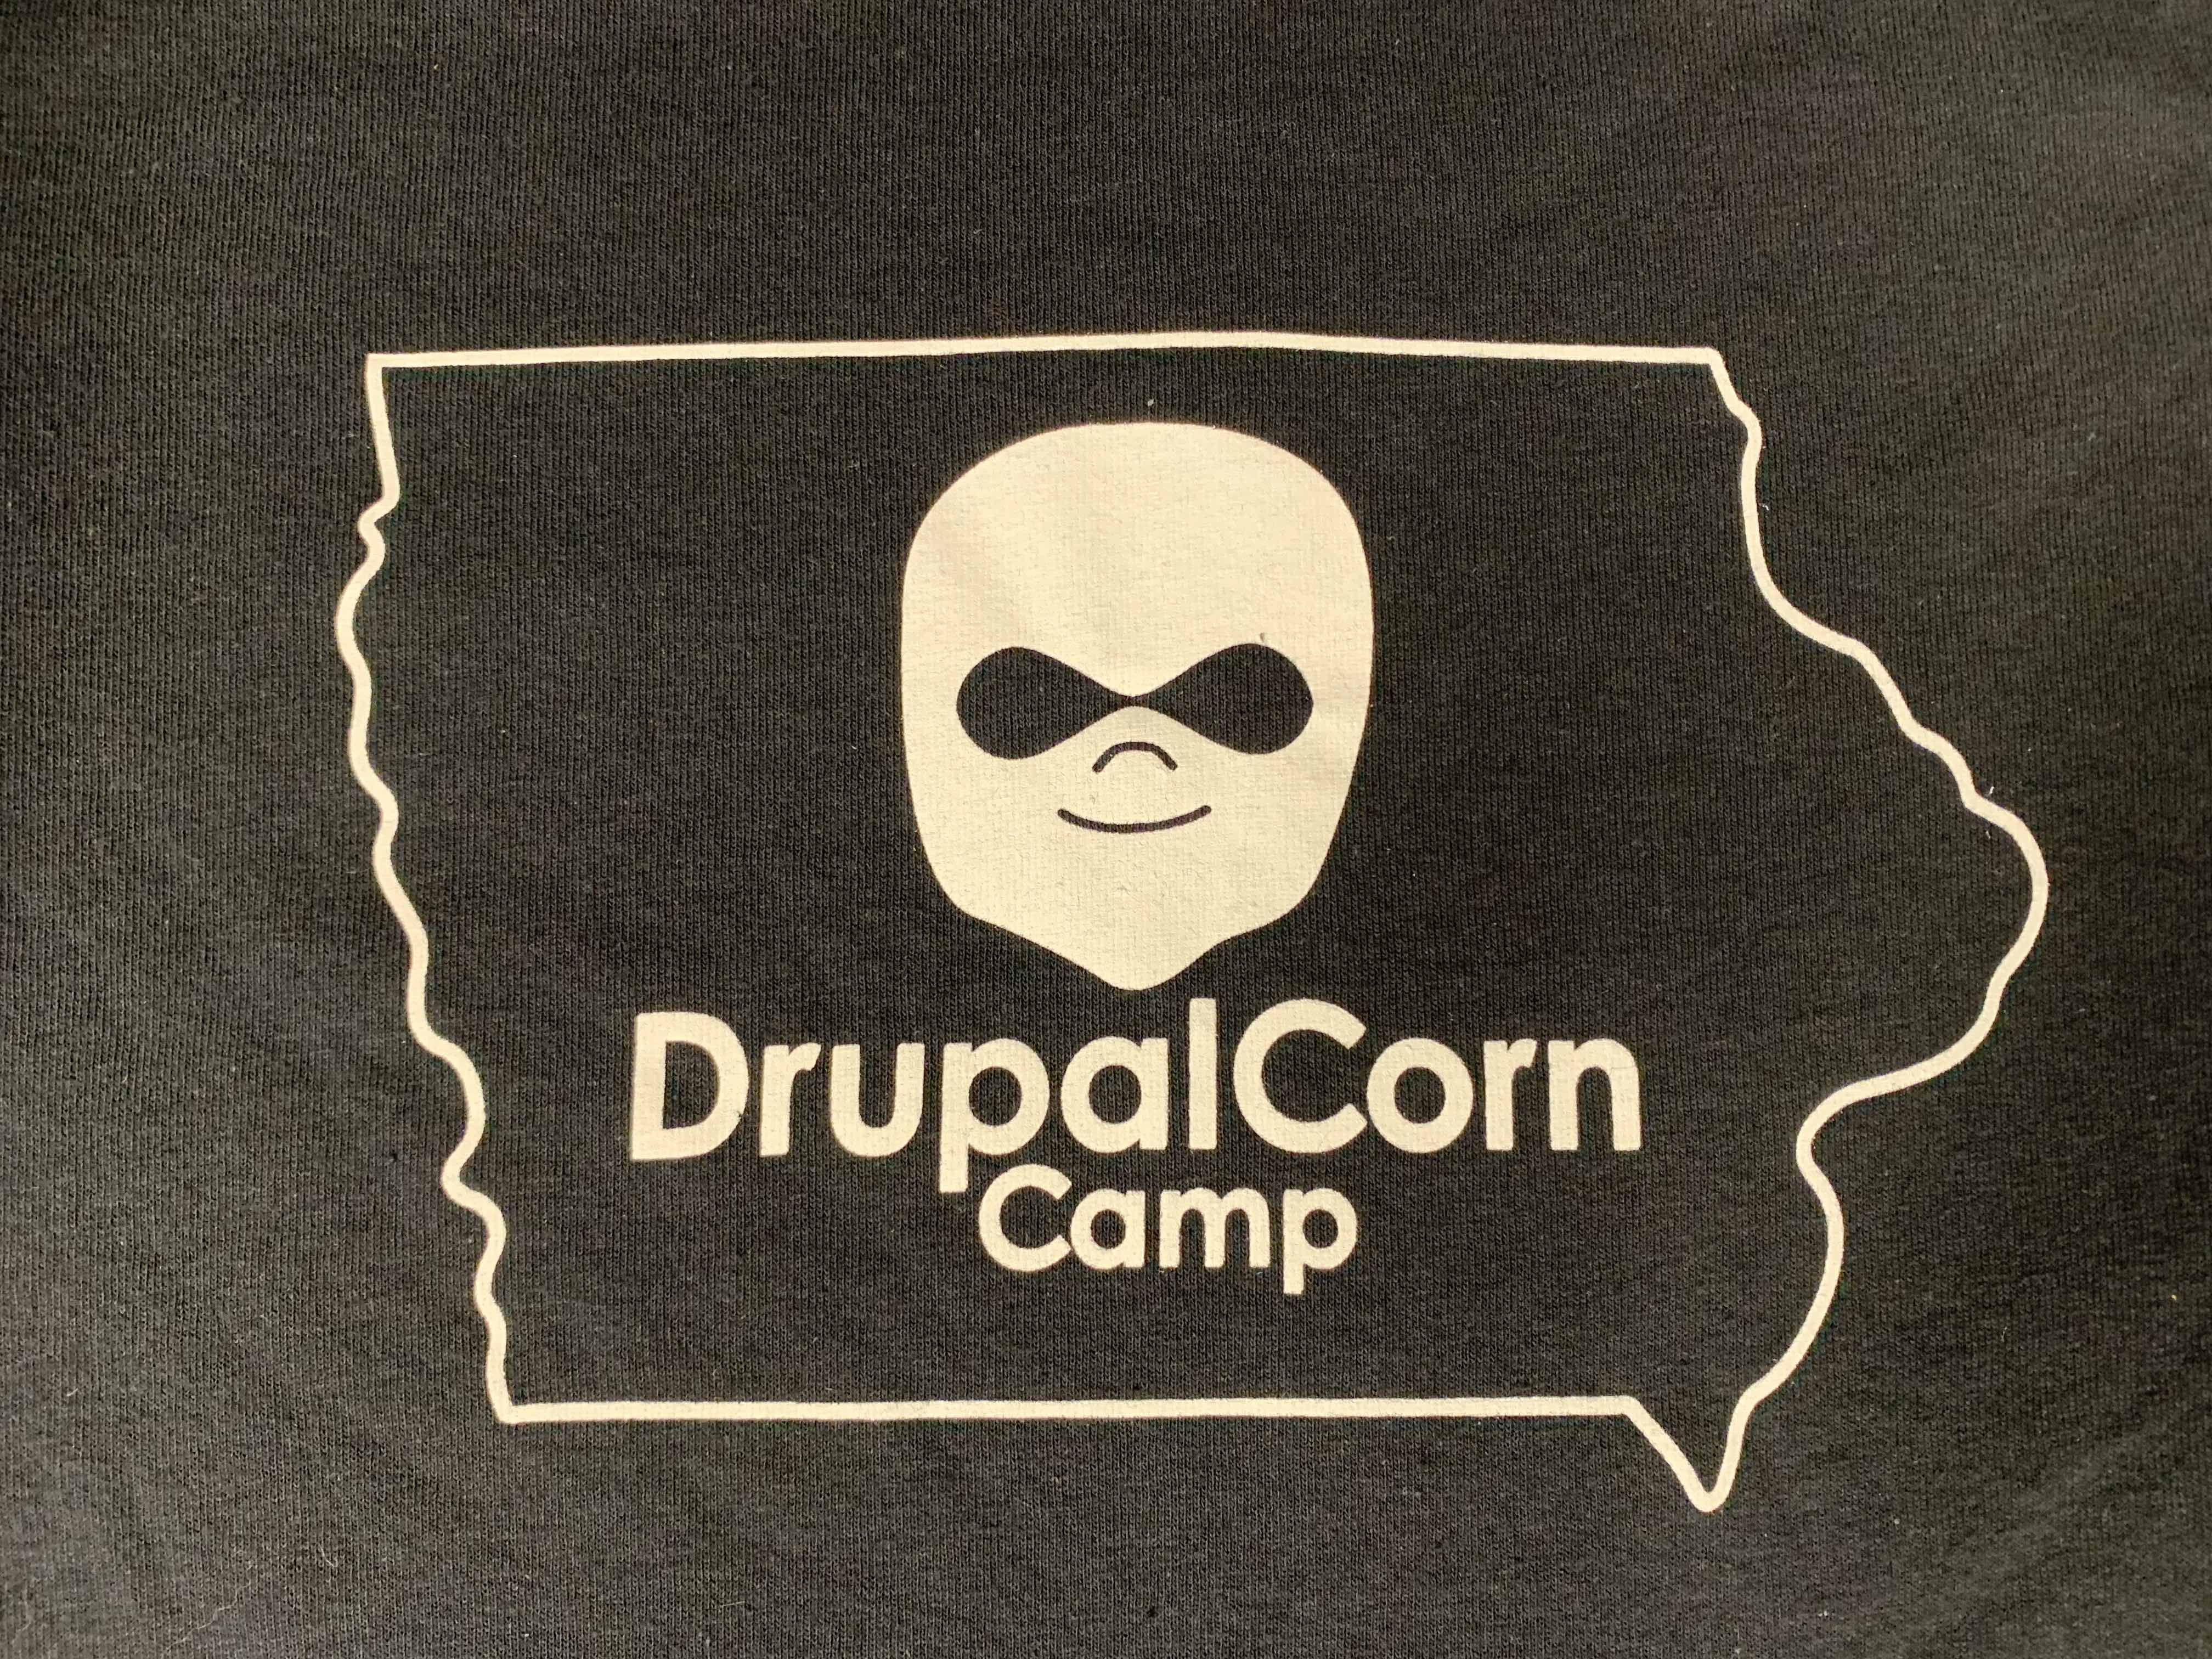 2019 DrupalCorn Shirt - Black with White lines. Outline of the state of Iowa with DrupalCorn Logo in the middle and text 'DrupalCorn'